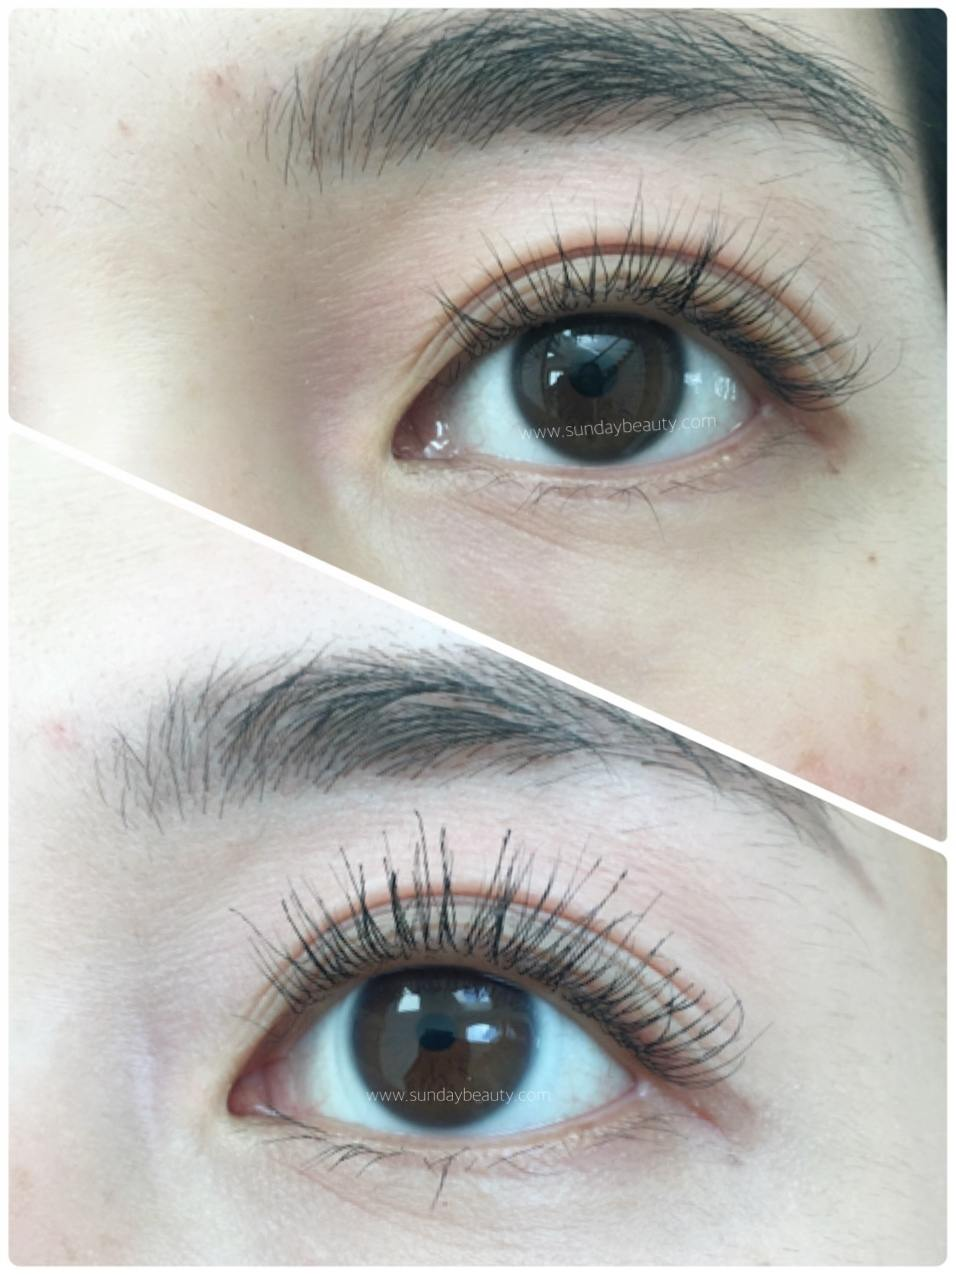 9080420b964 Top: Washed and brushed lashes. Bottom: EyEnvy Conditioning Mascara applied.